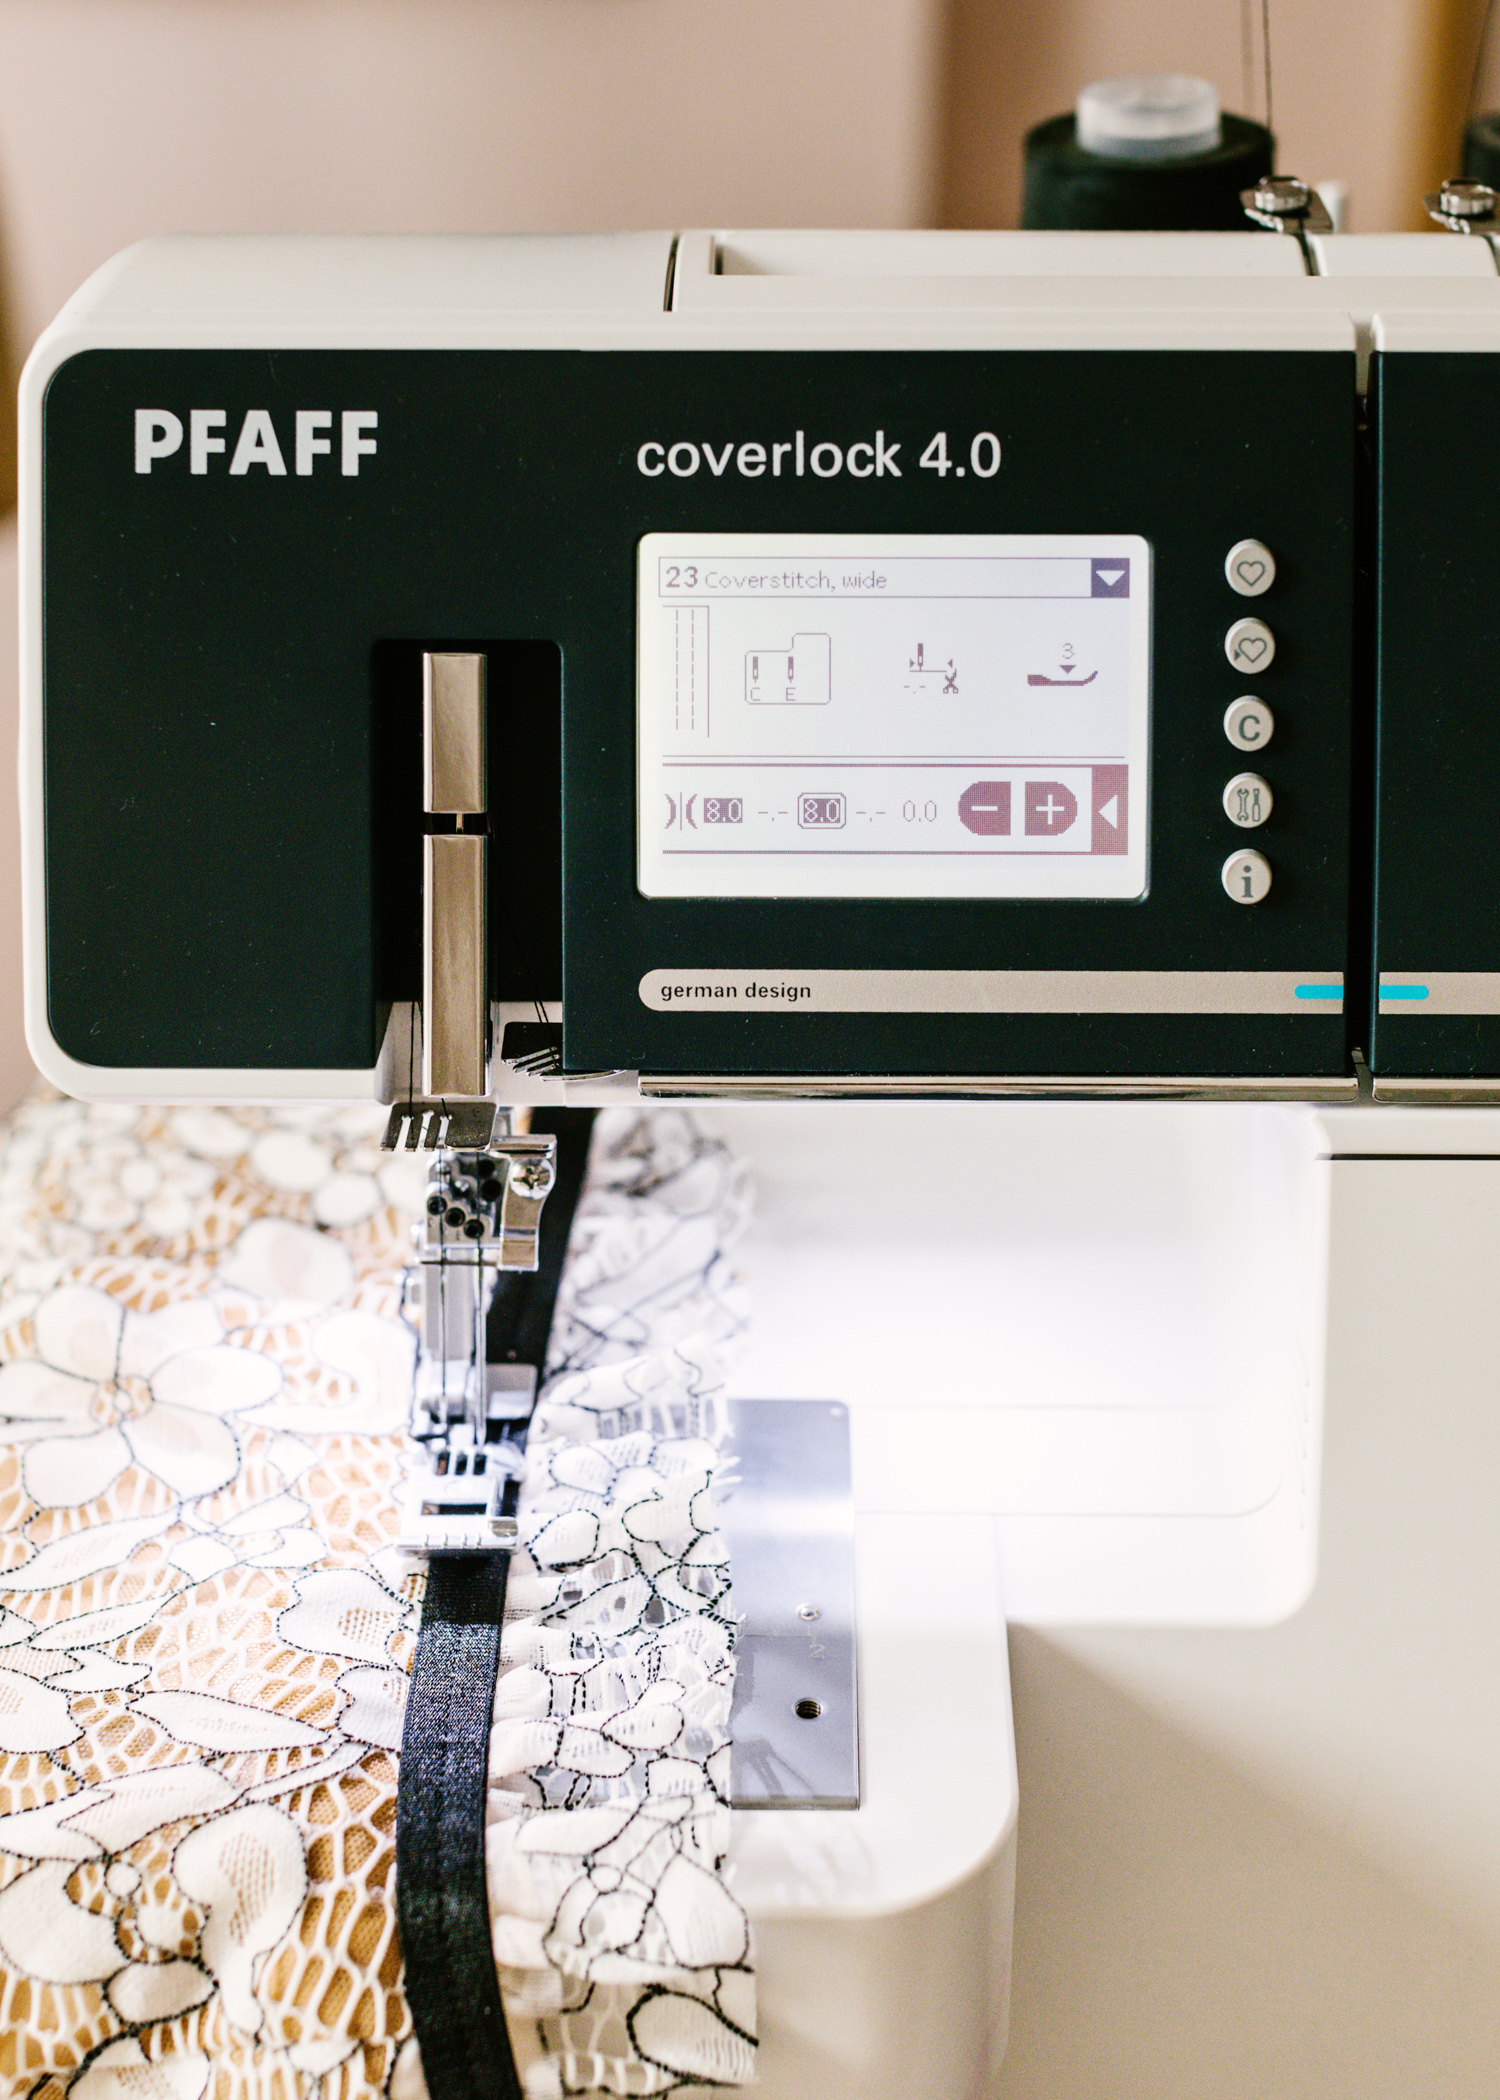 PFAFF coverlock 4 0 Review by Madalynne Intimates + Lingerie